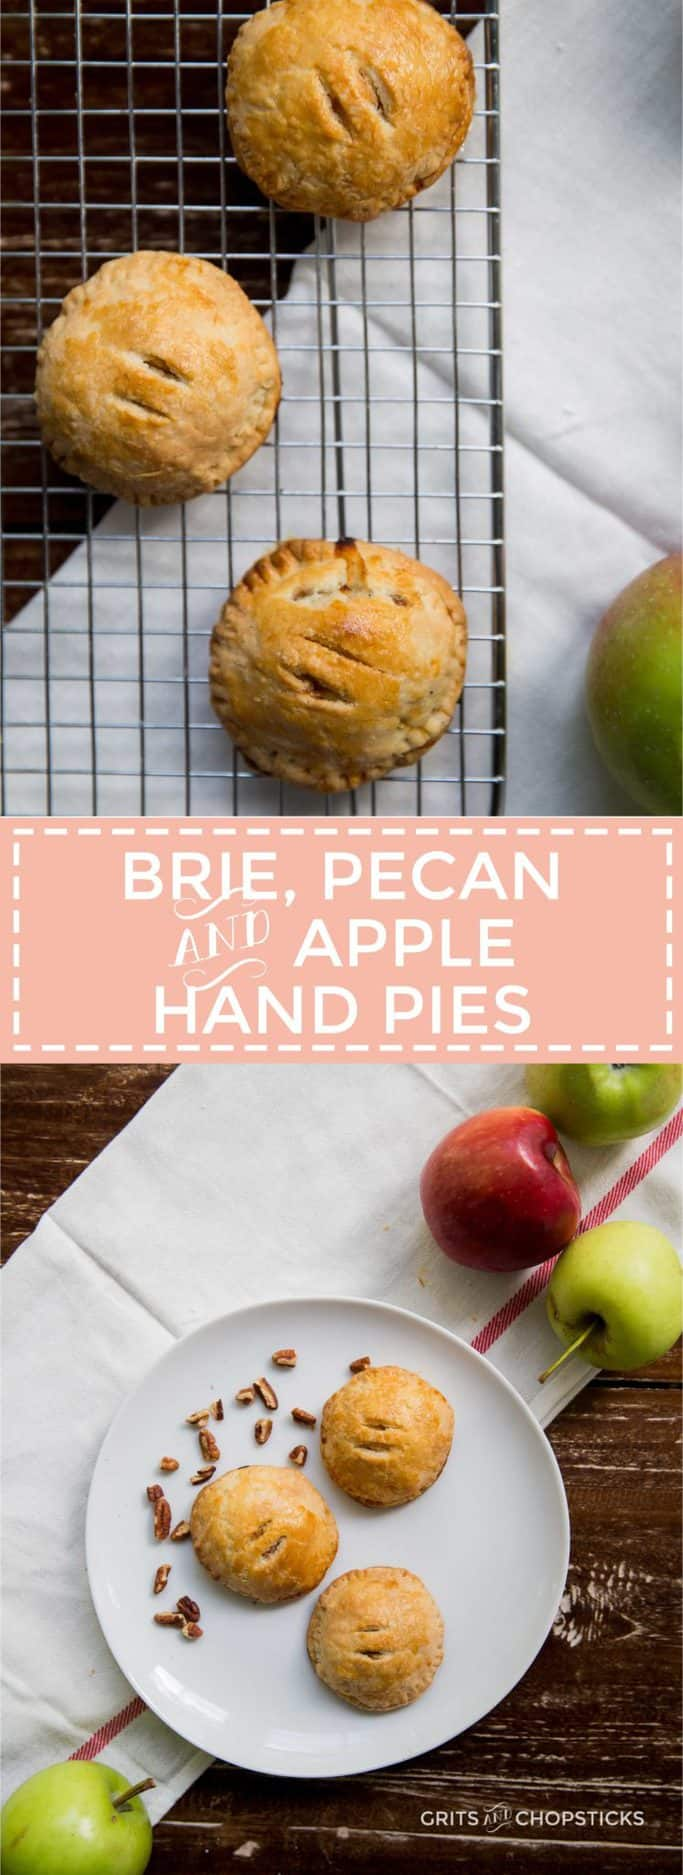 Brie, pecan and apple hand pies make an adorable fall treat